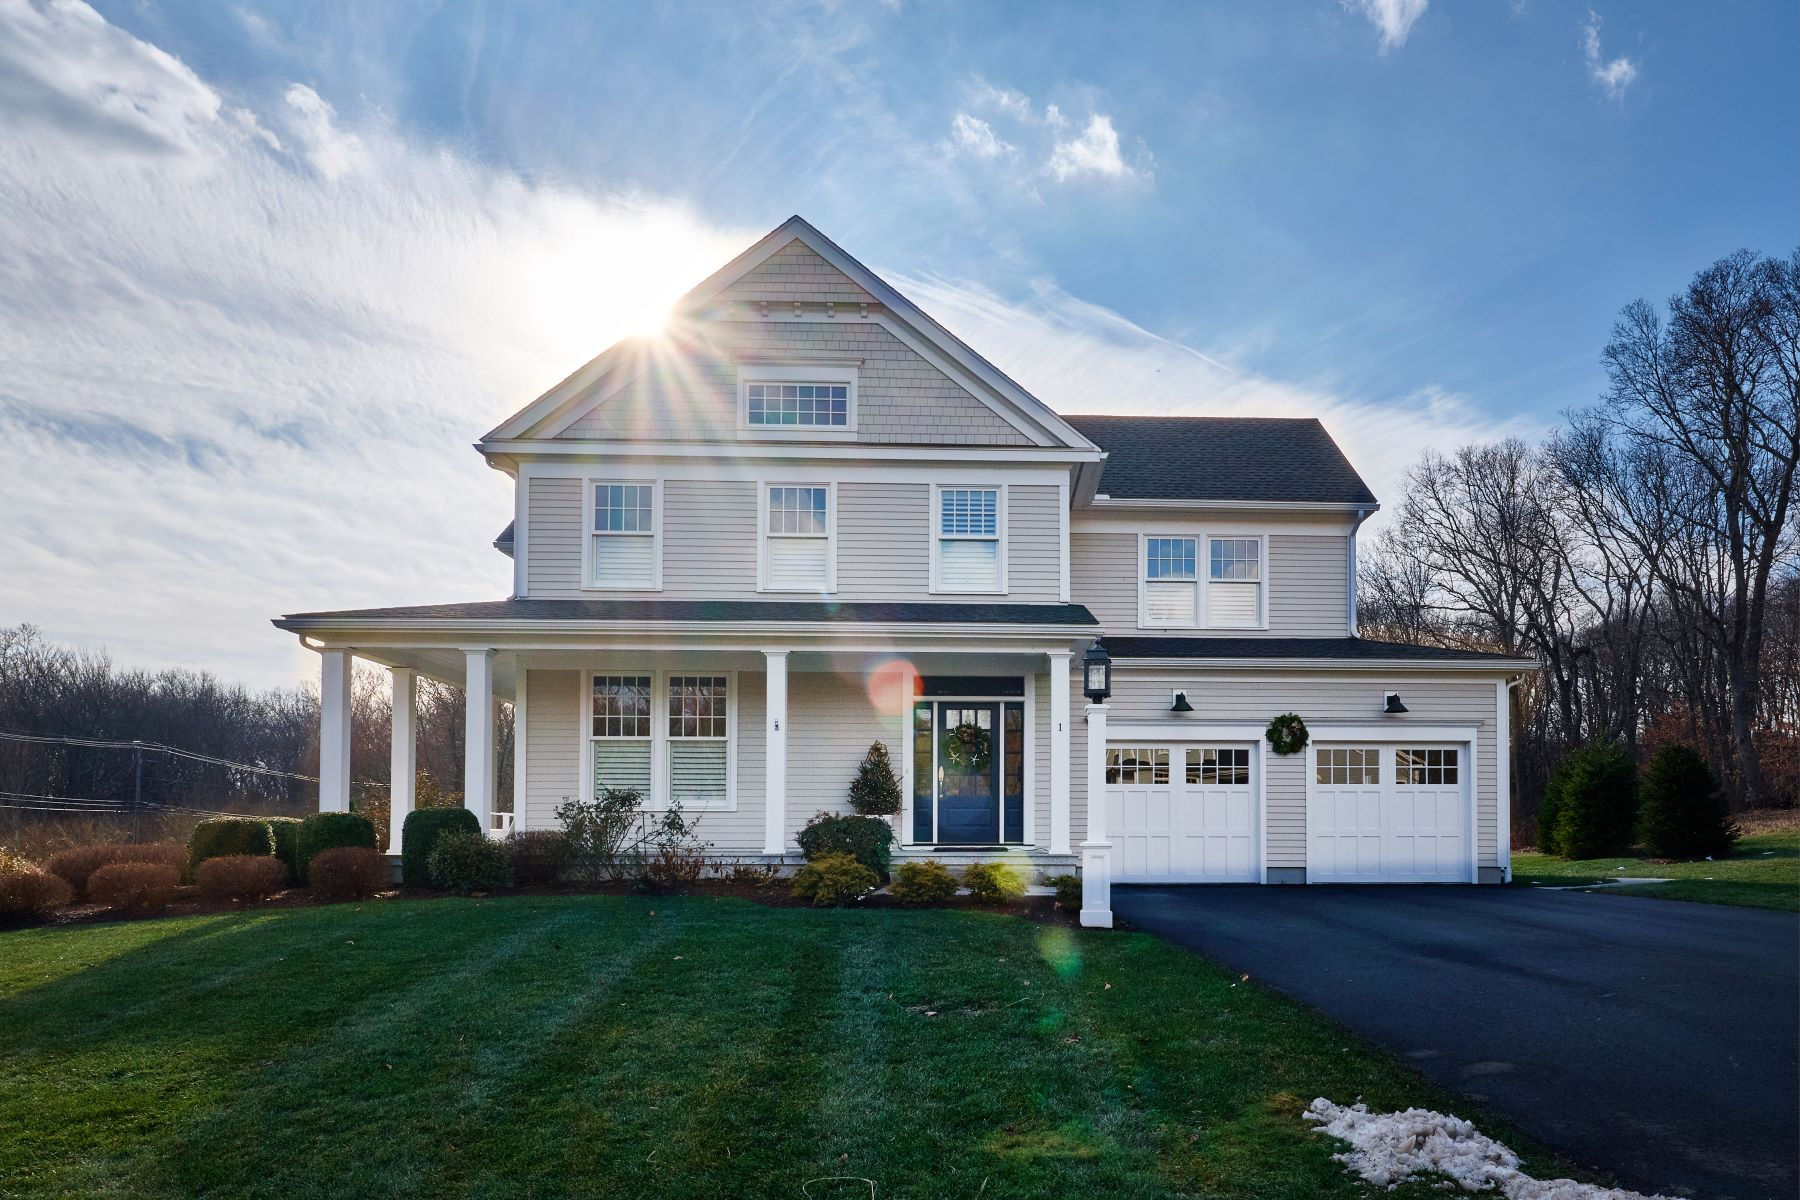 Single Family Home for Sale at Benton's Knoll in Sachem's Head 3 Benton's Knoll Guilford, Connecticut 06437 United States